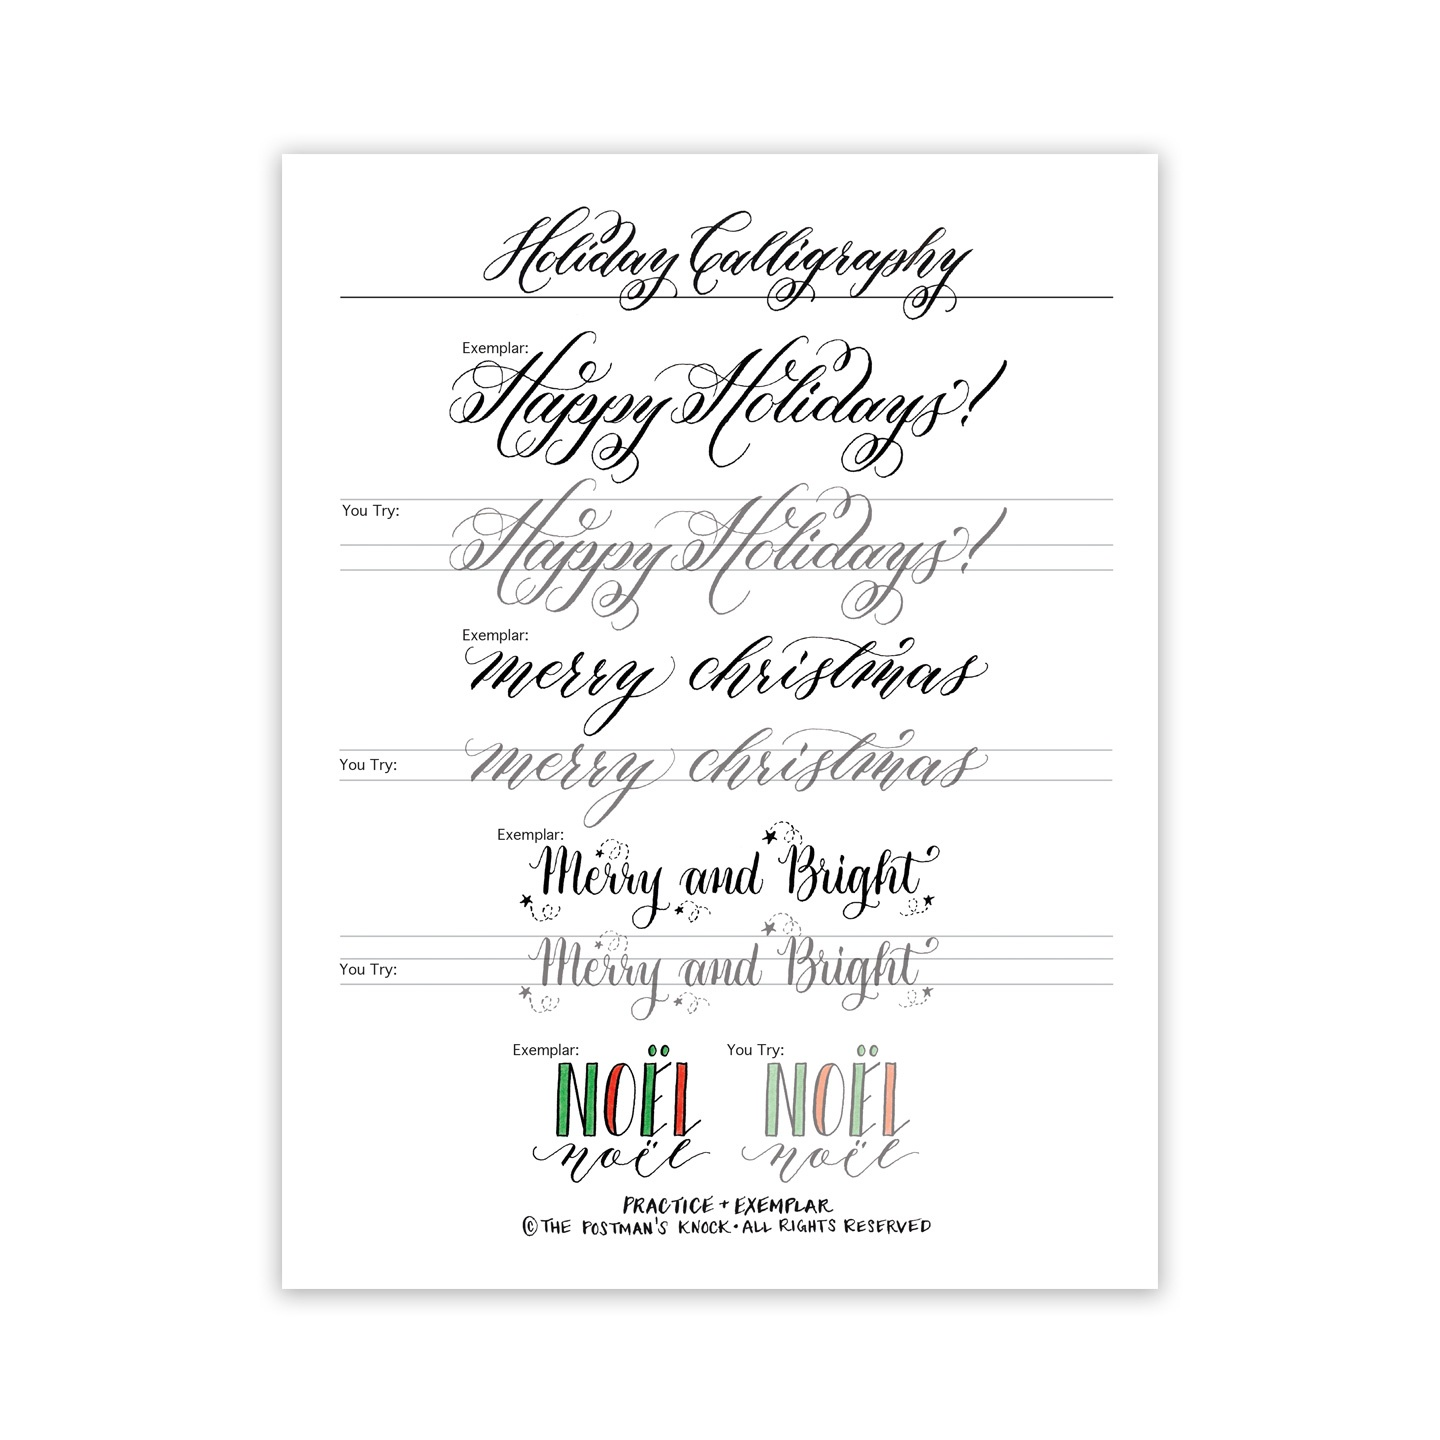 Free Holiday Calligraphy Exemplar – The Postman's Knock - Free Calligraphy Printables